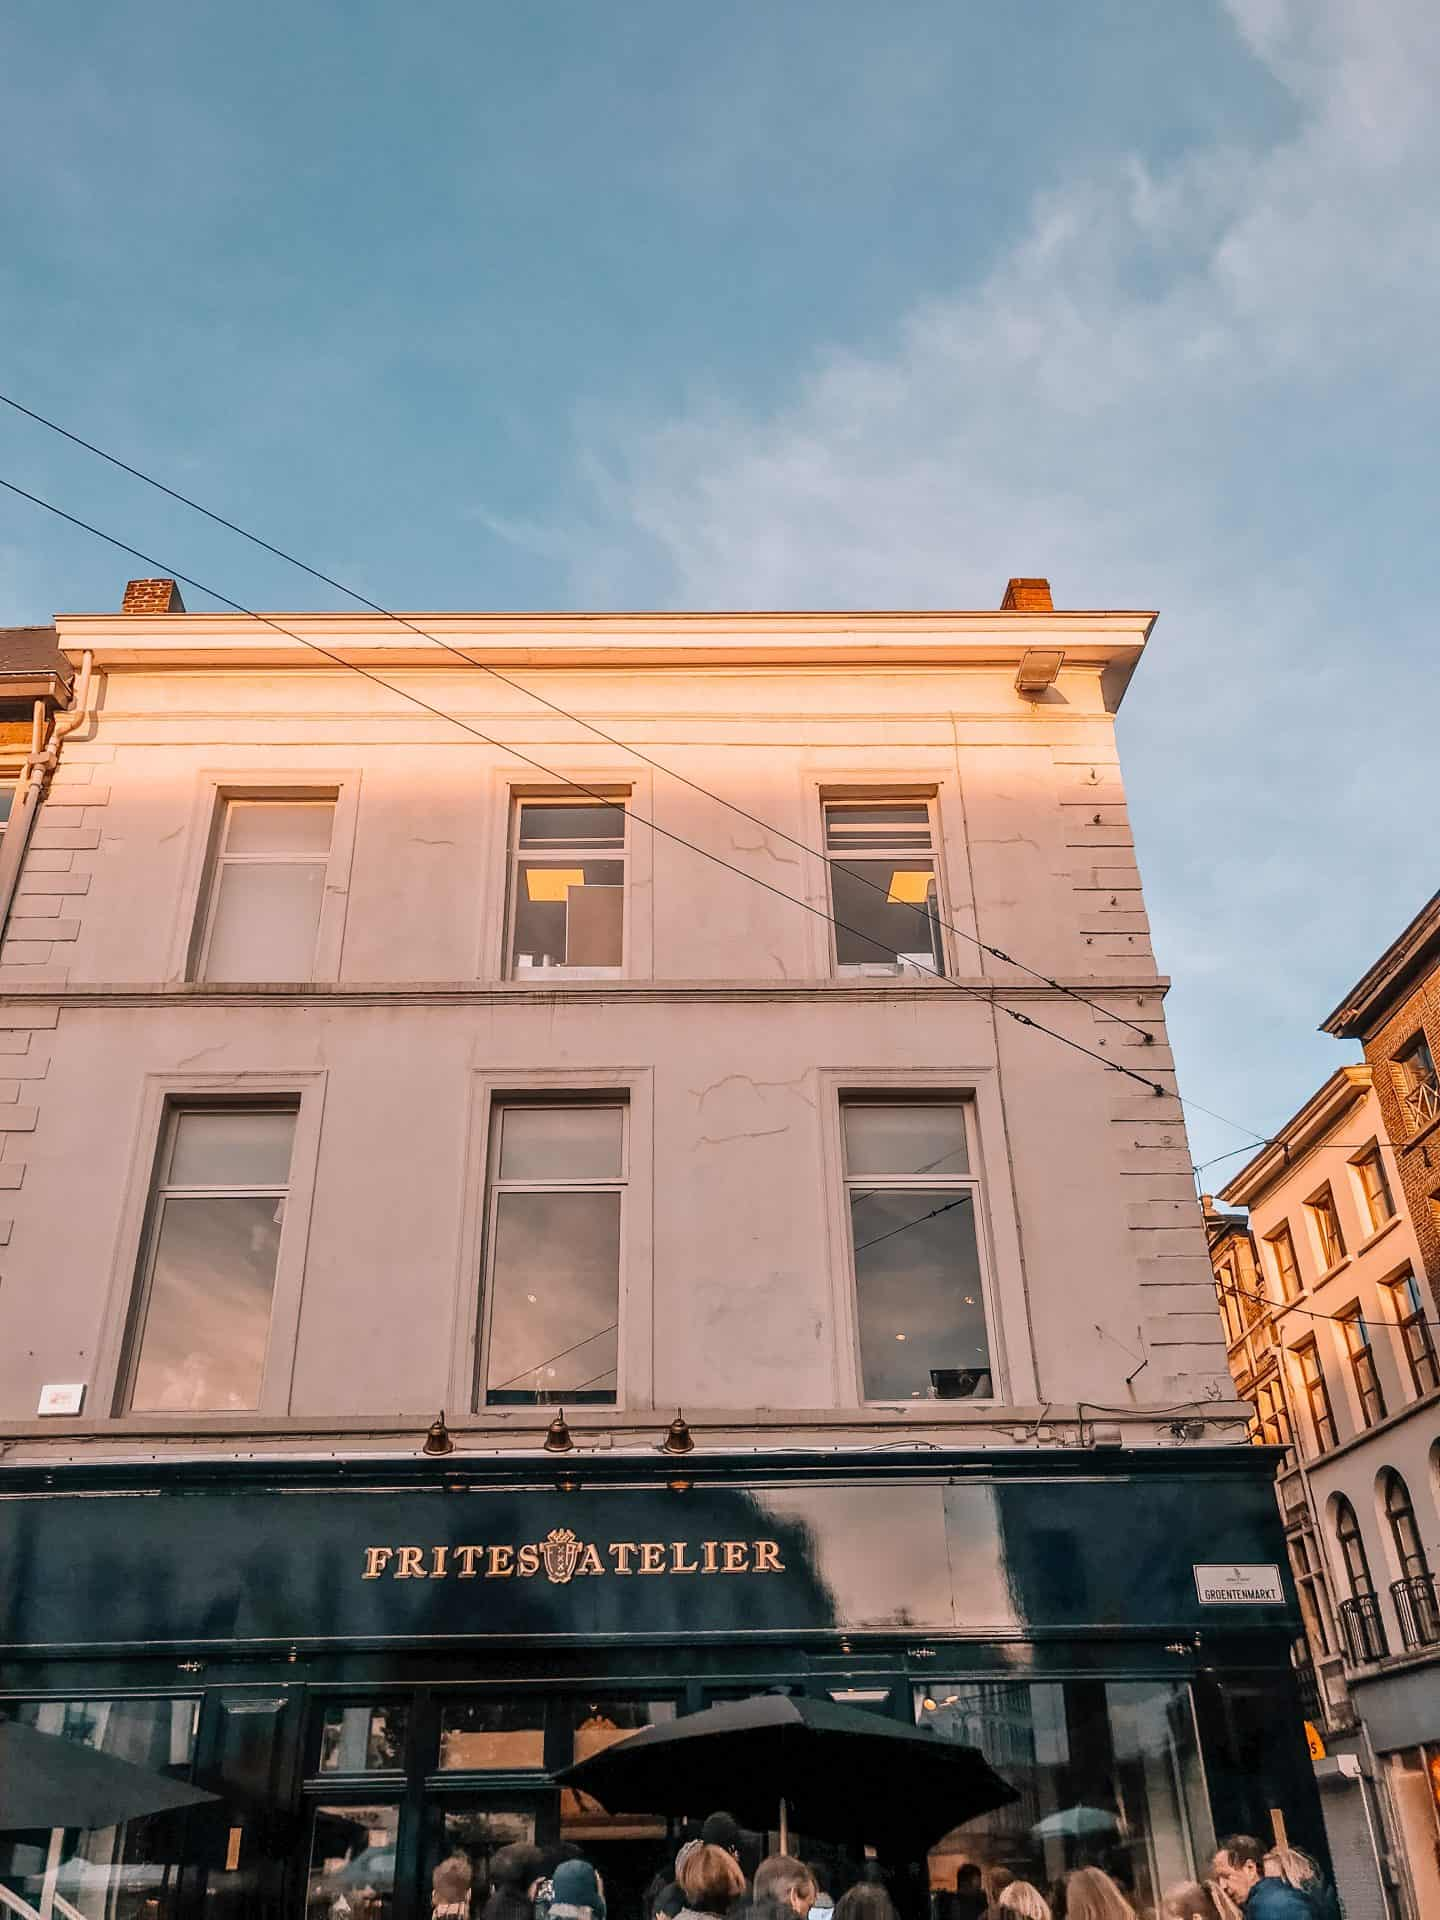 Fries Atelier in Ghent